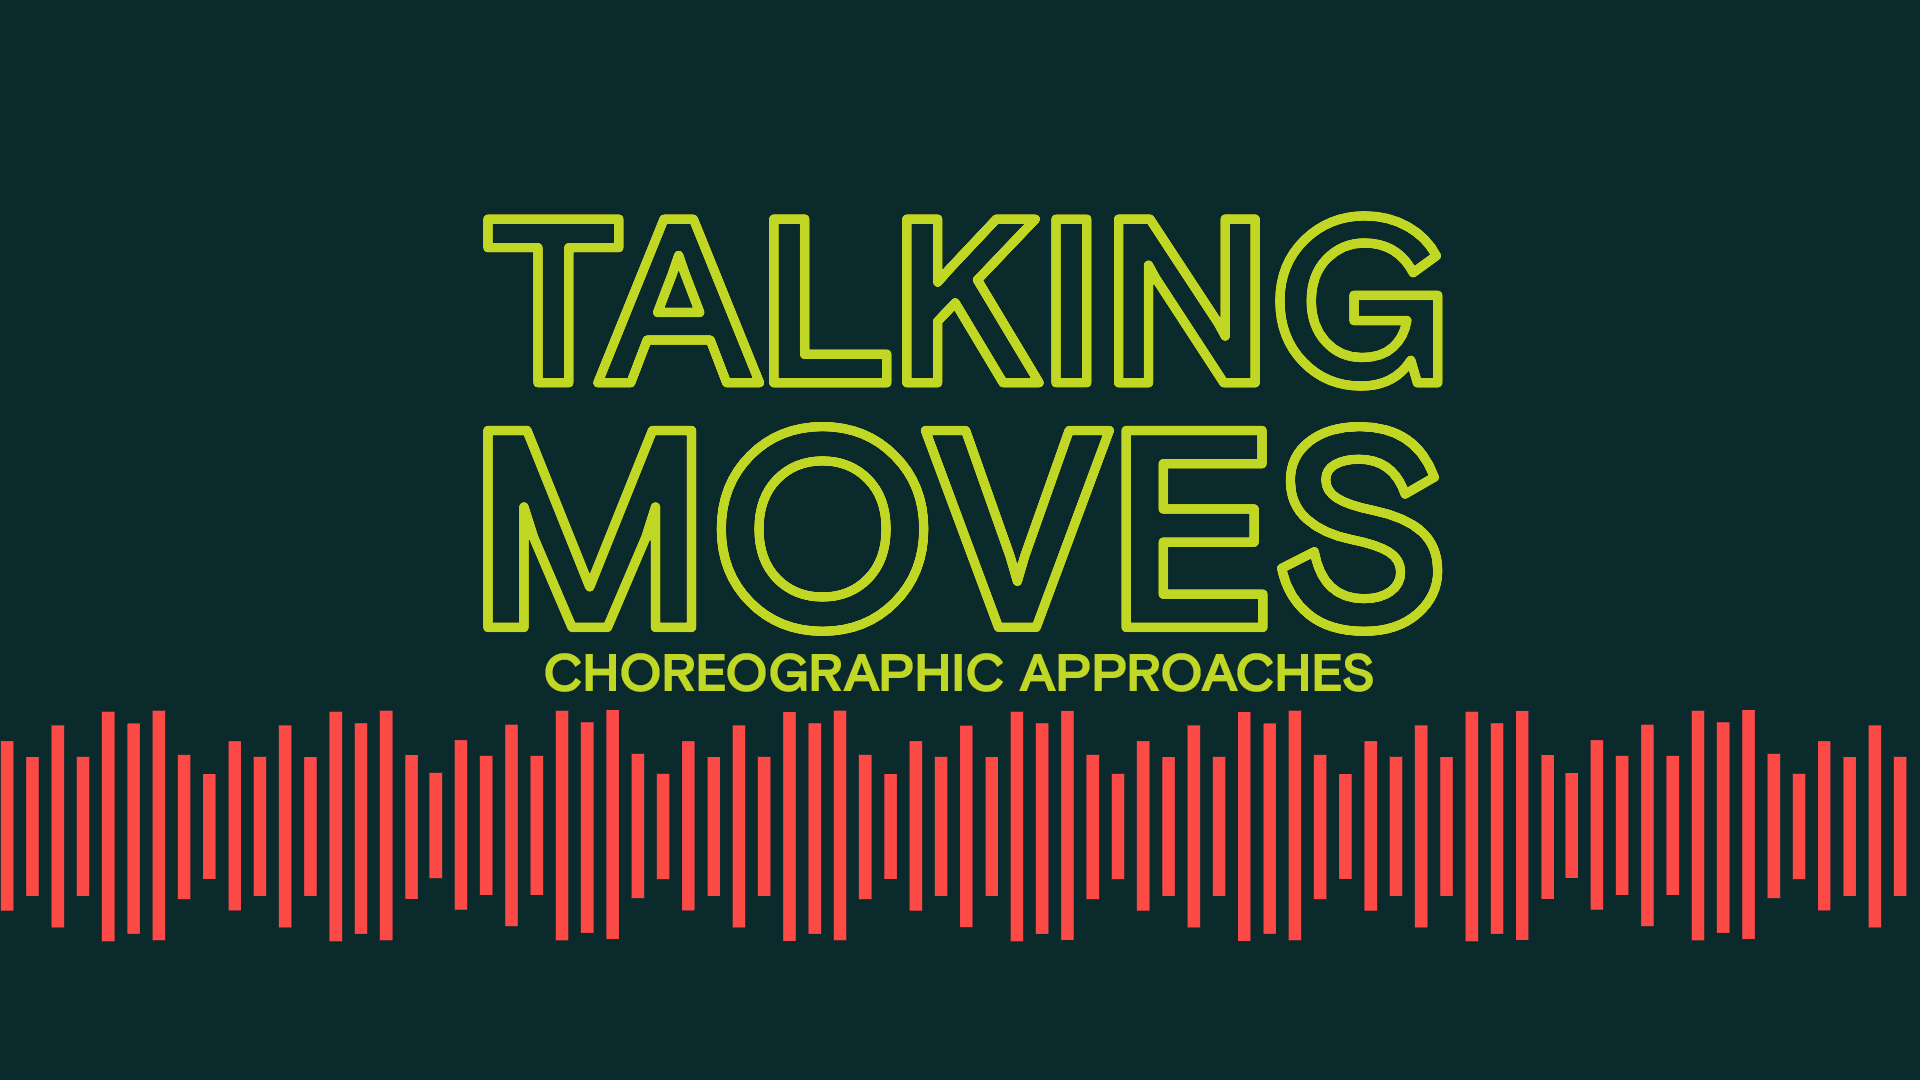 Choreographic Approaches title Talking Moves